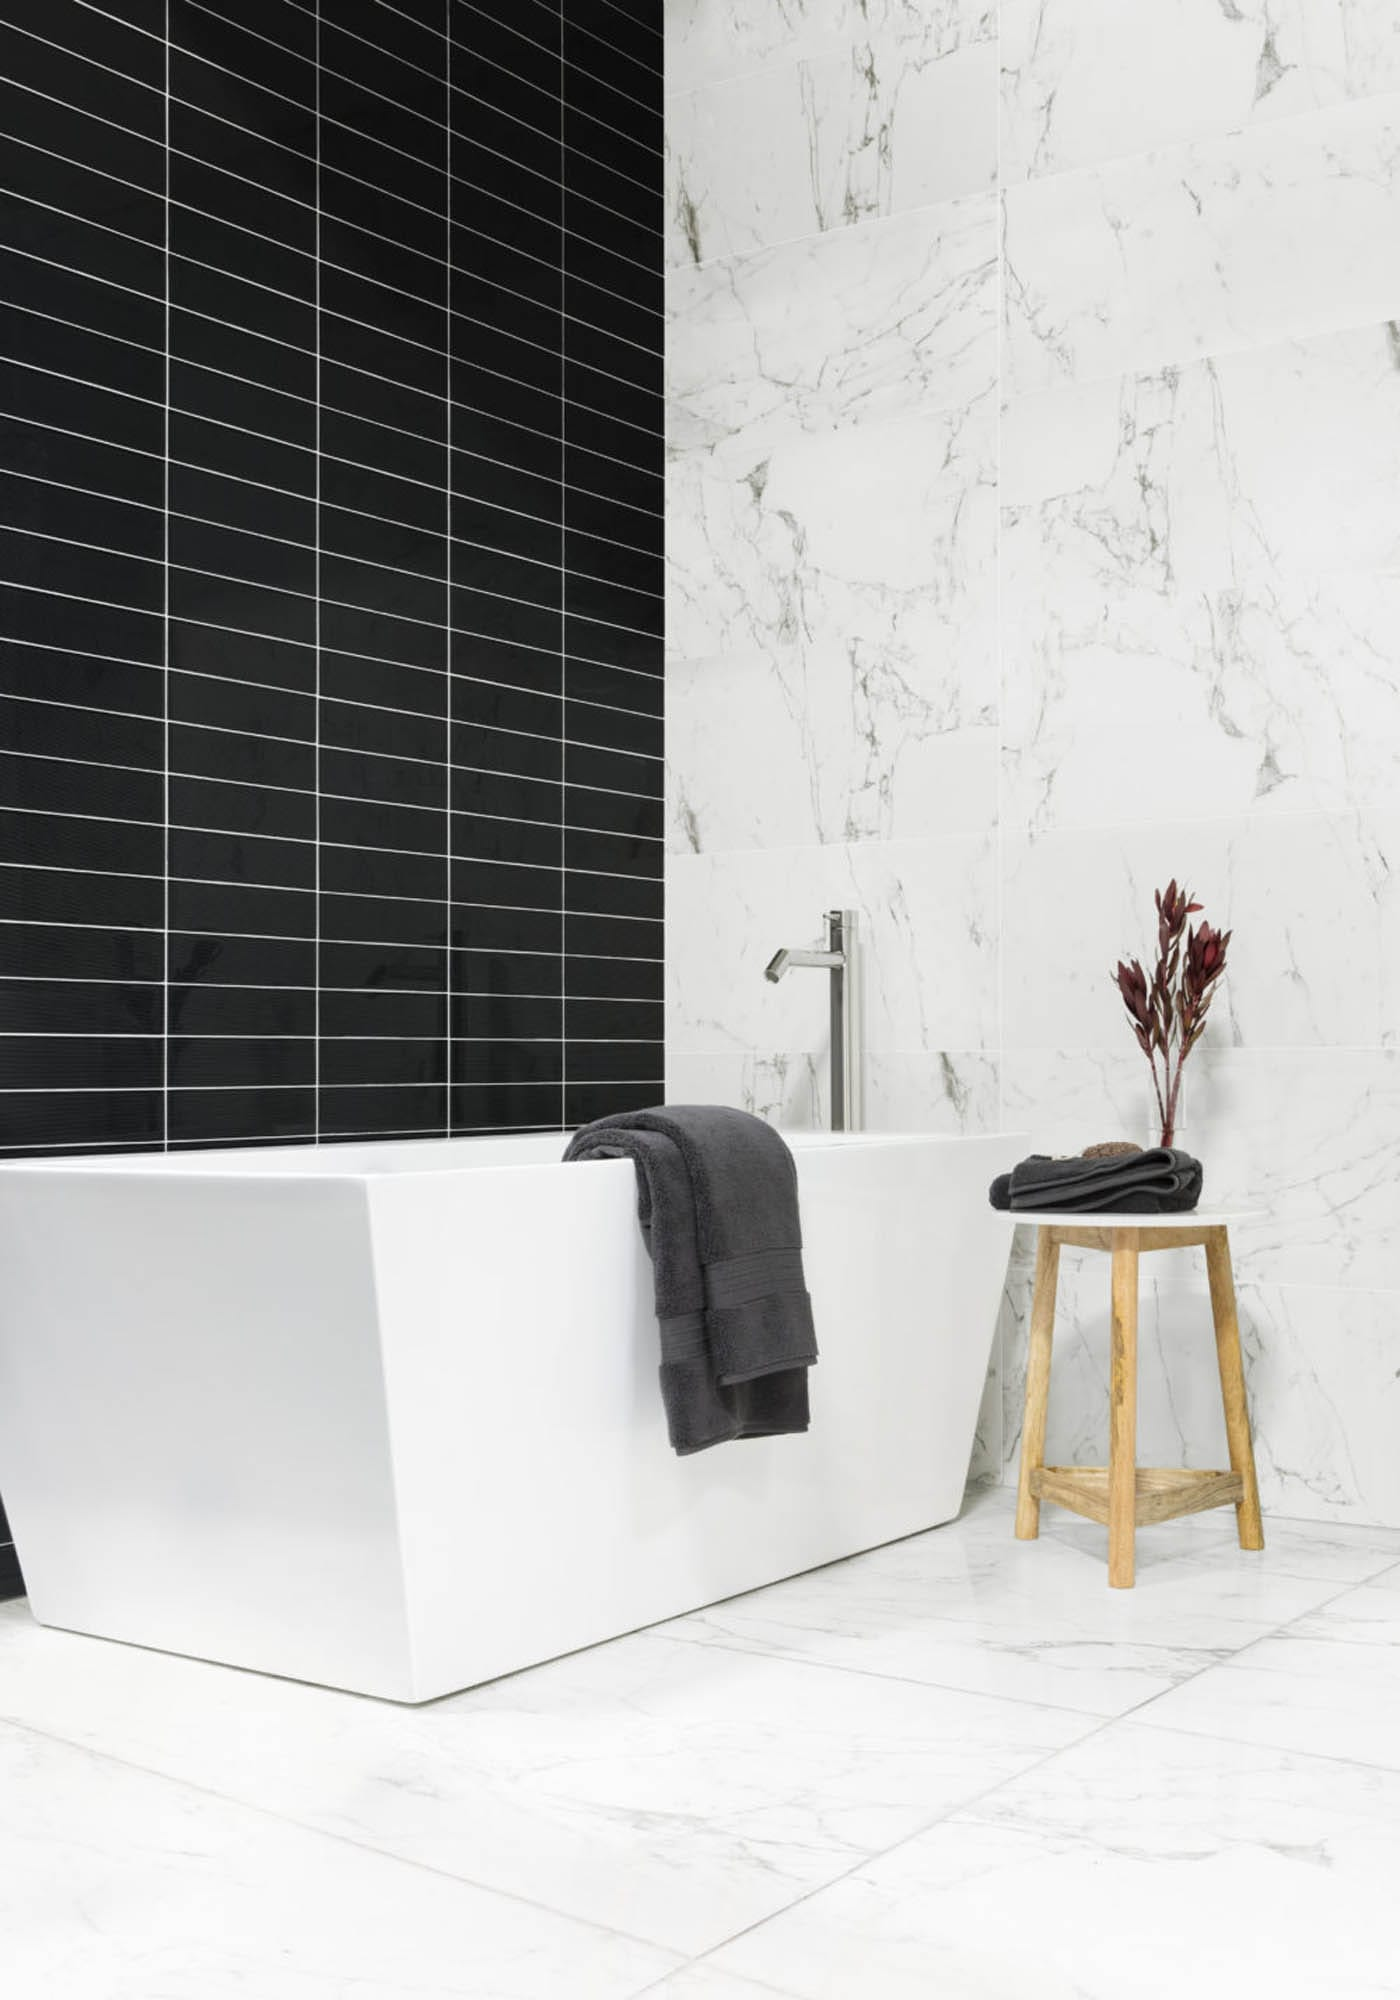 Maximize Your Space With Large-Format Tile - The Tile Shop Blog